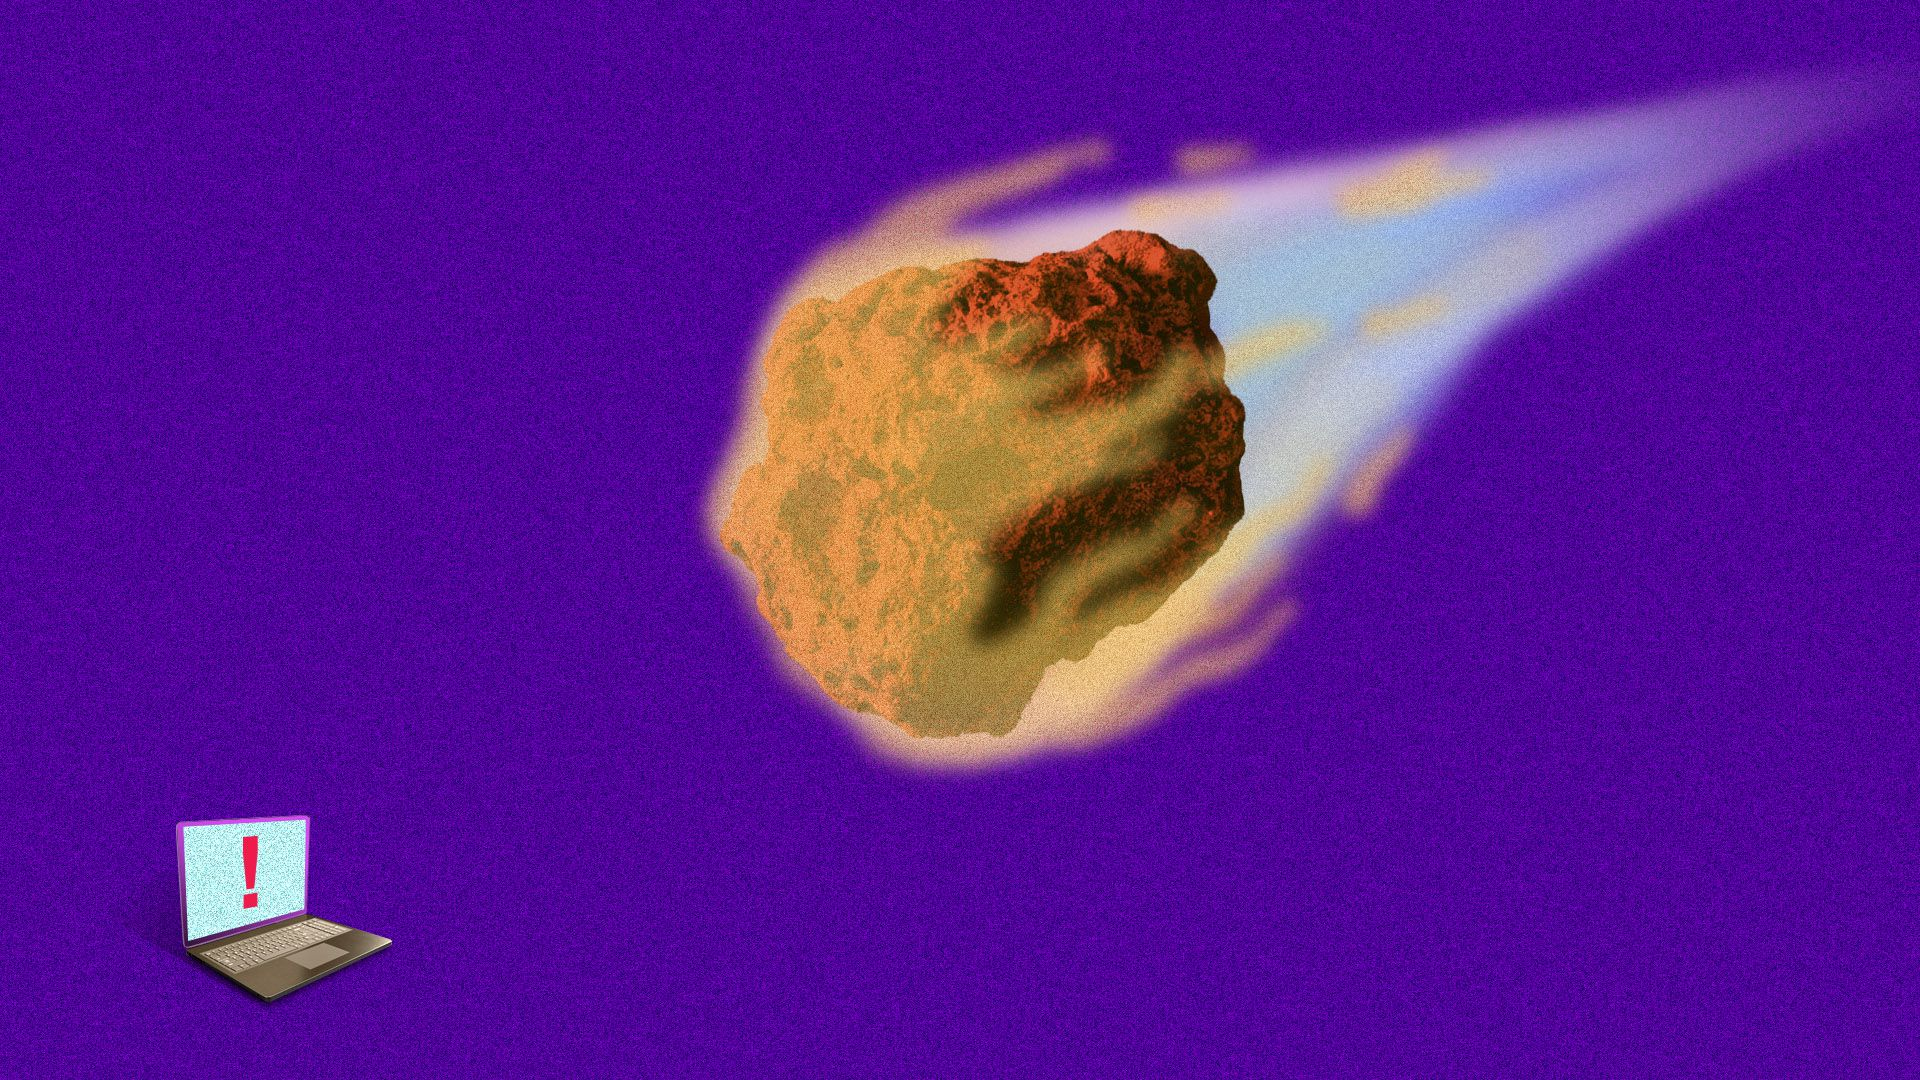 An illustration of a flaming meteor headed for a laptop, over a purple background.